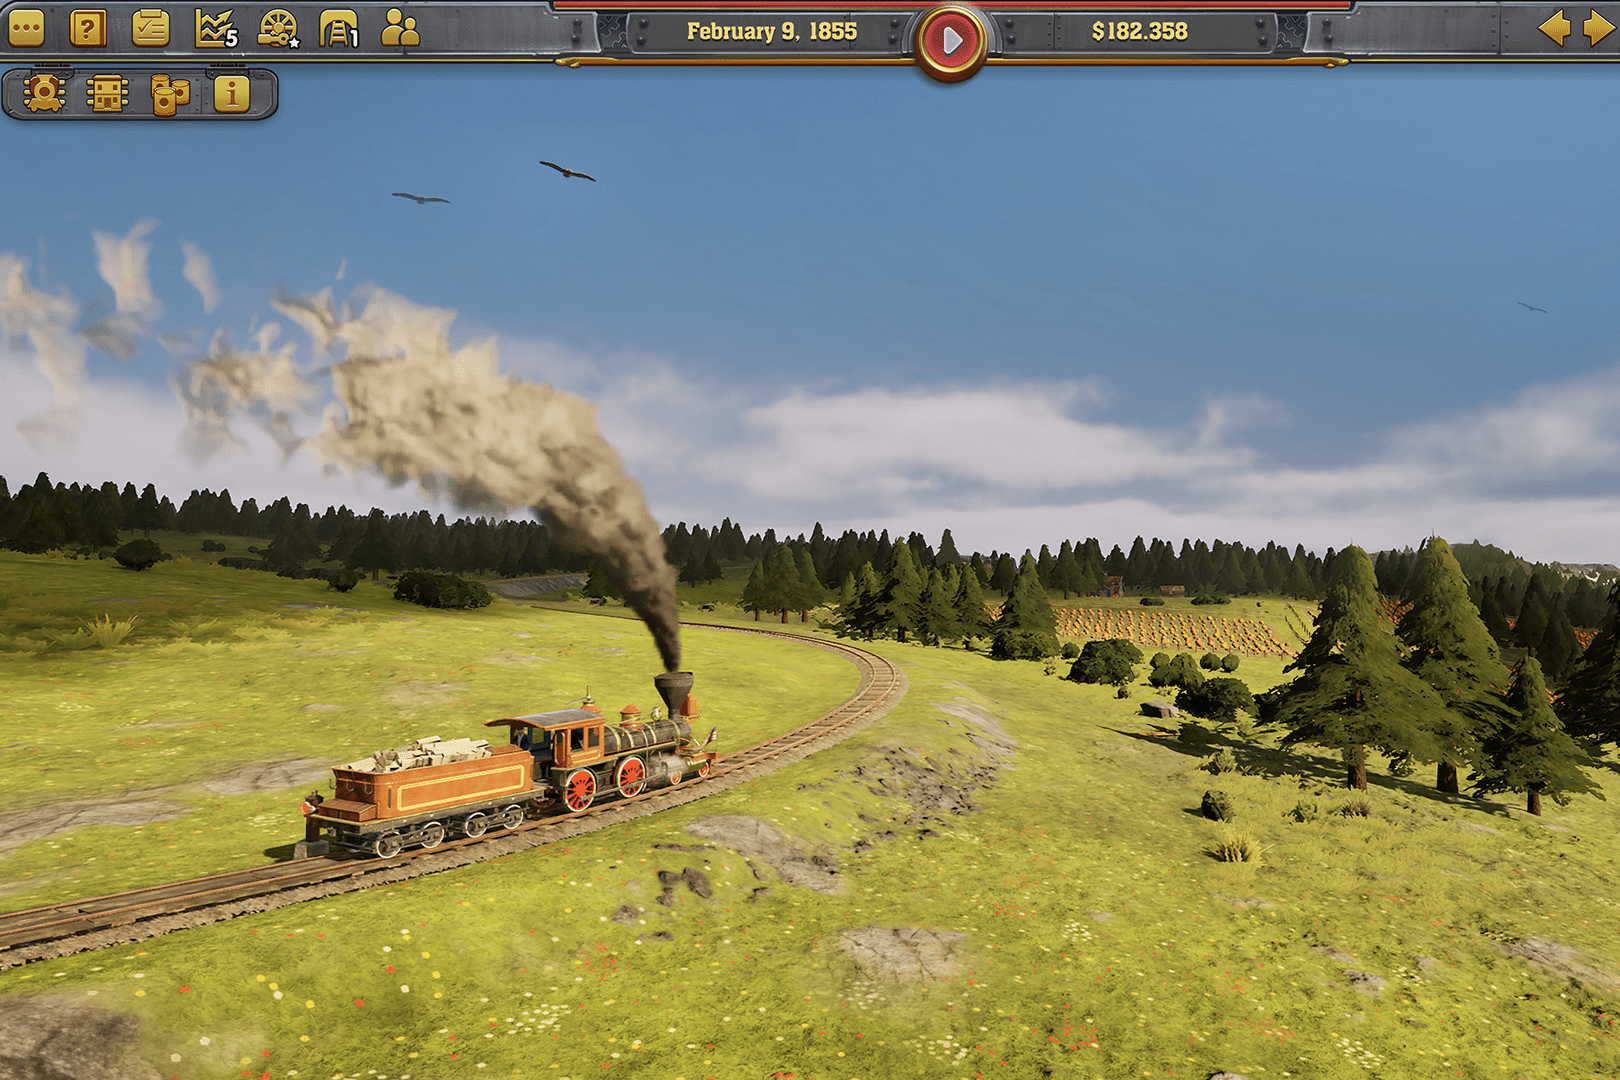 Best Train Simulation Games for PC